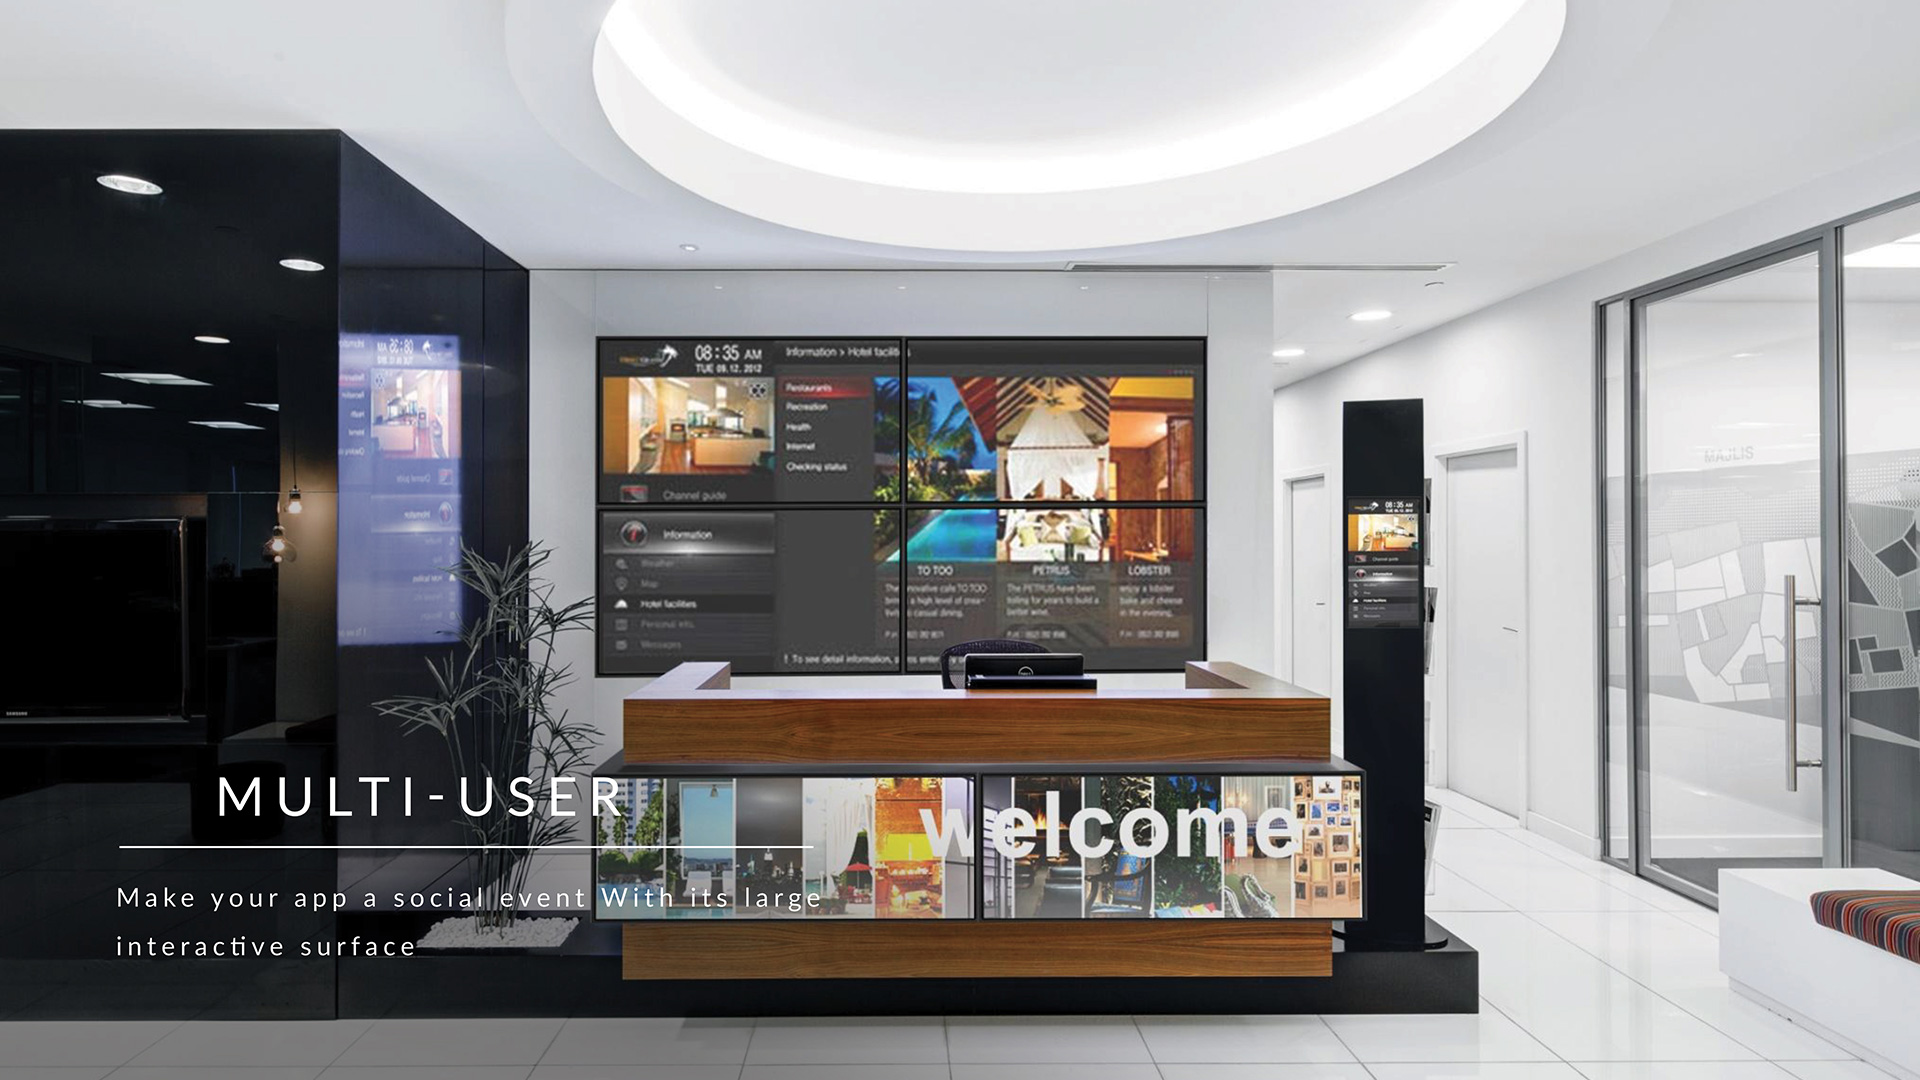 multi-user touchscreen hotel